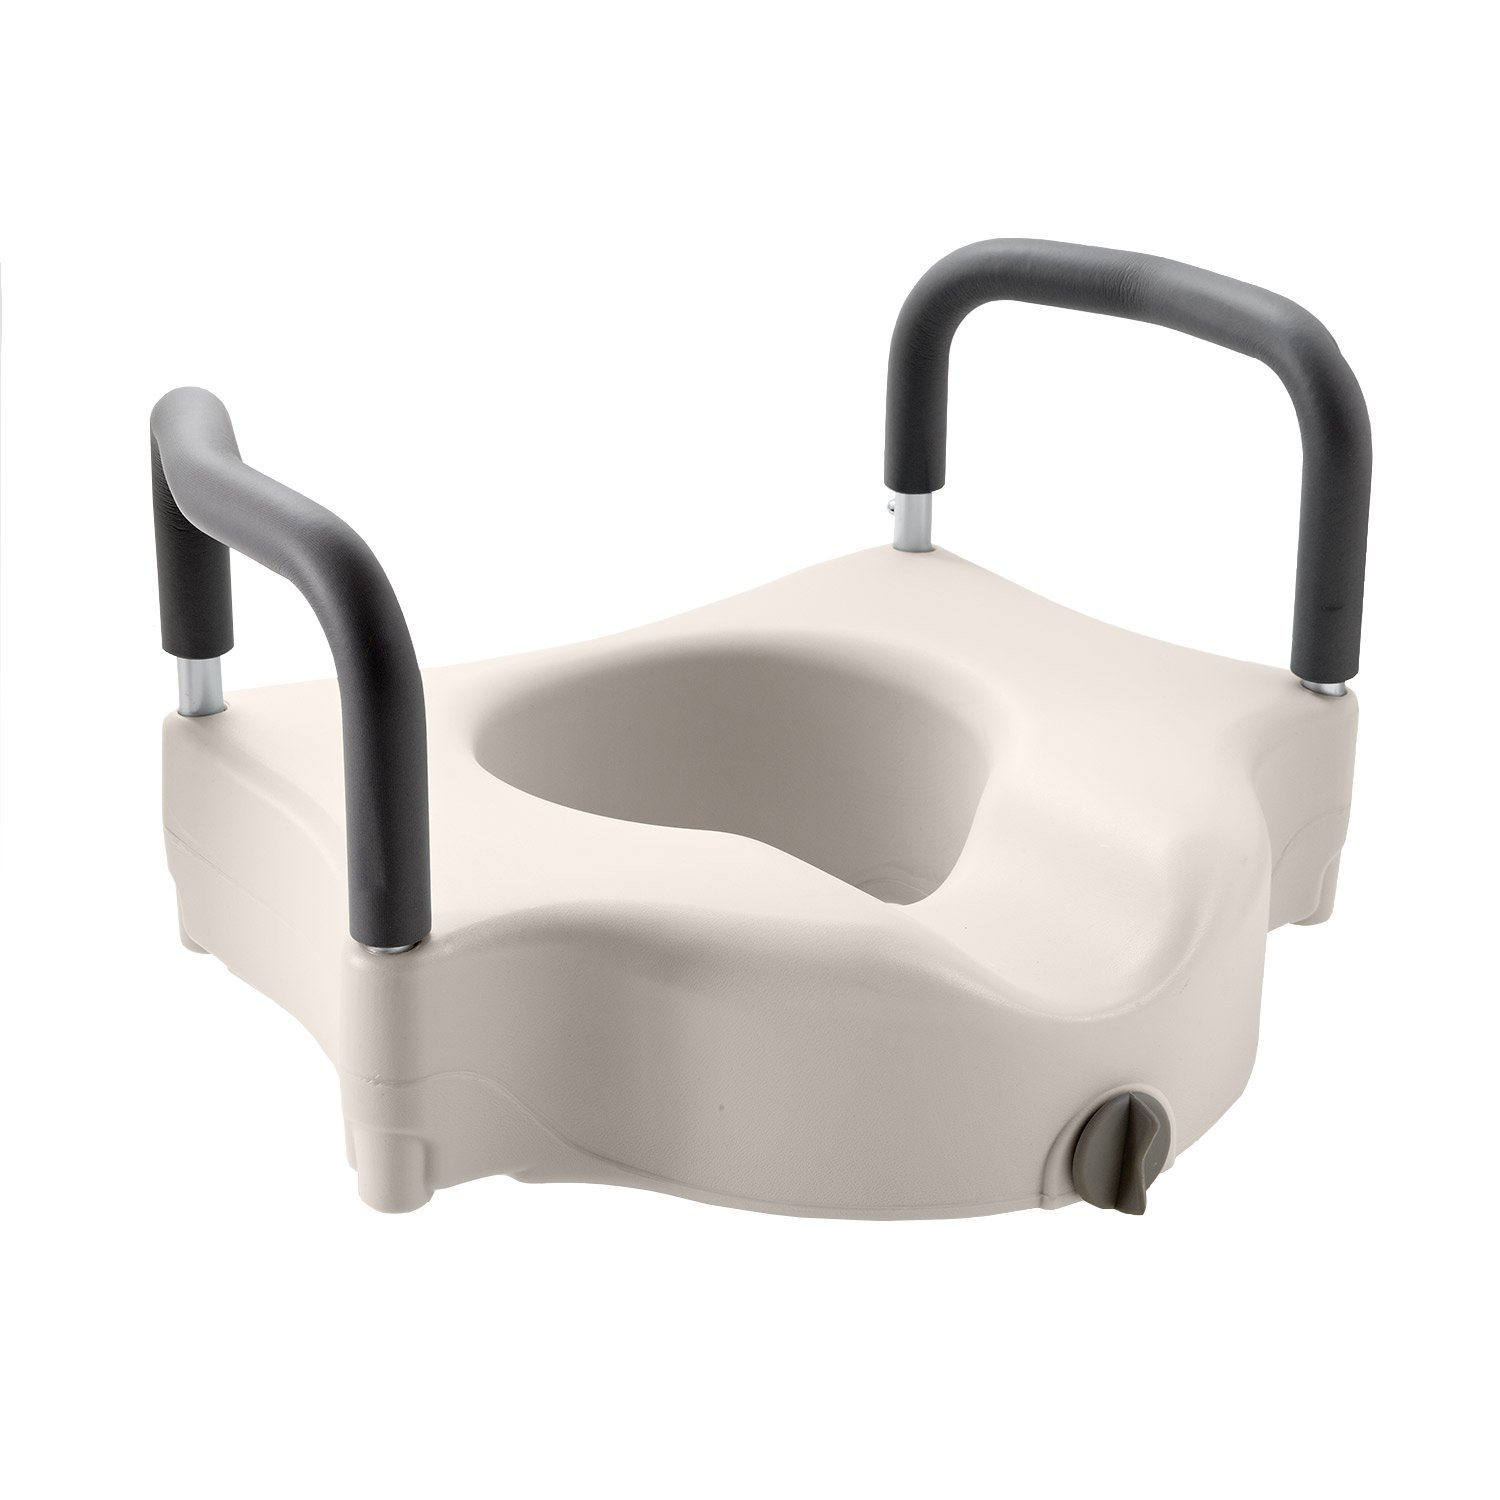 Medline Locking Elevated Toilet Seat with Arms